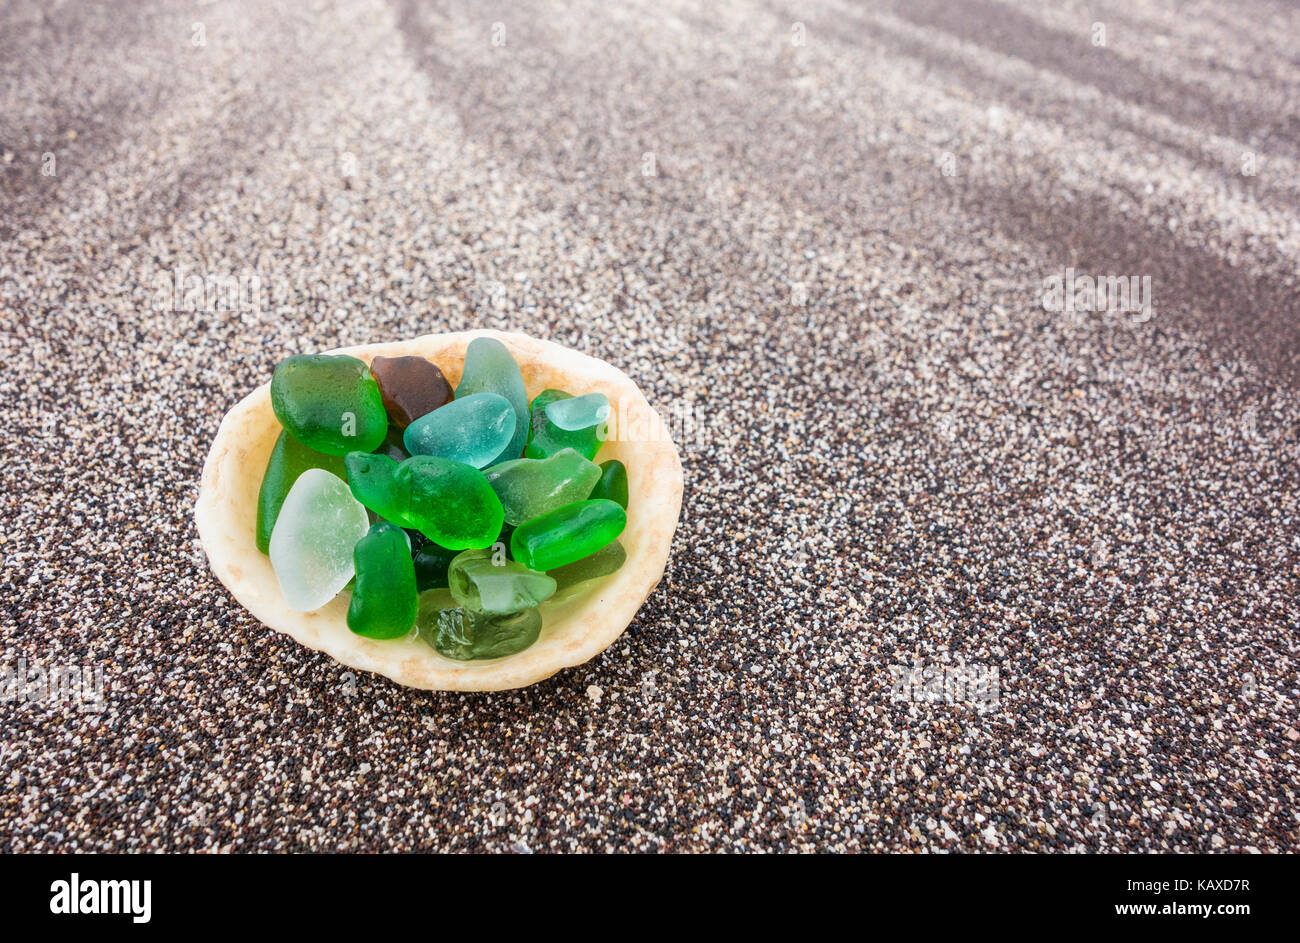 Glass from broken bottles washed on to beach inside shell on beach - Stock Image